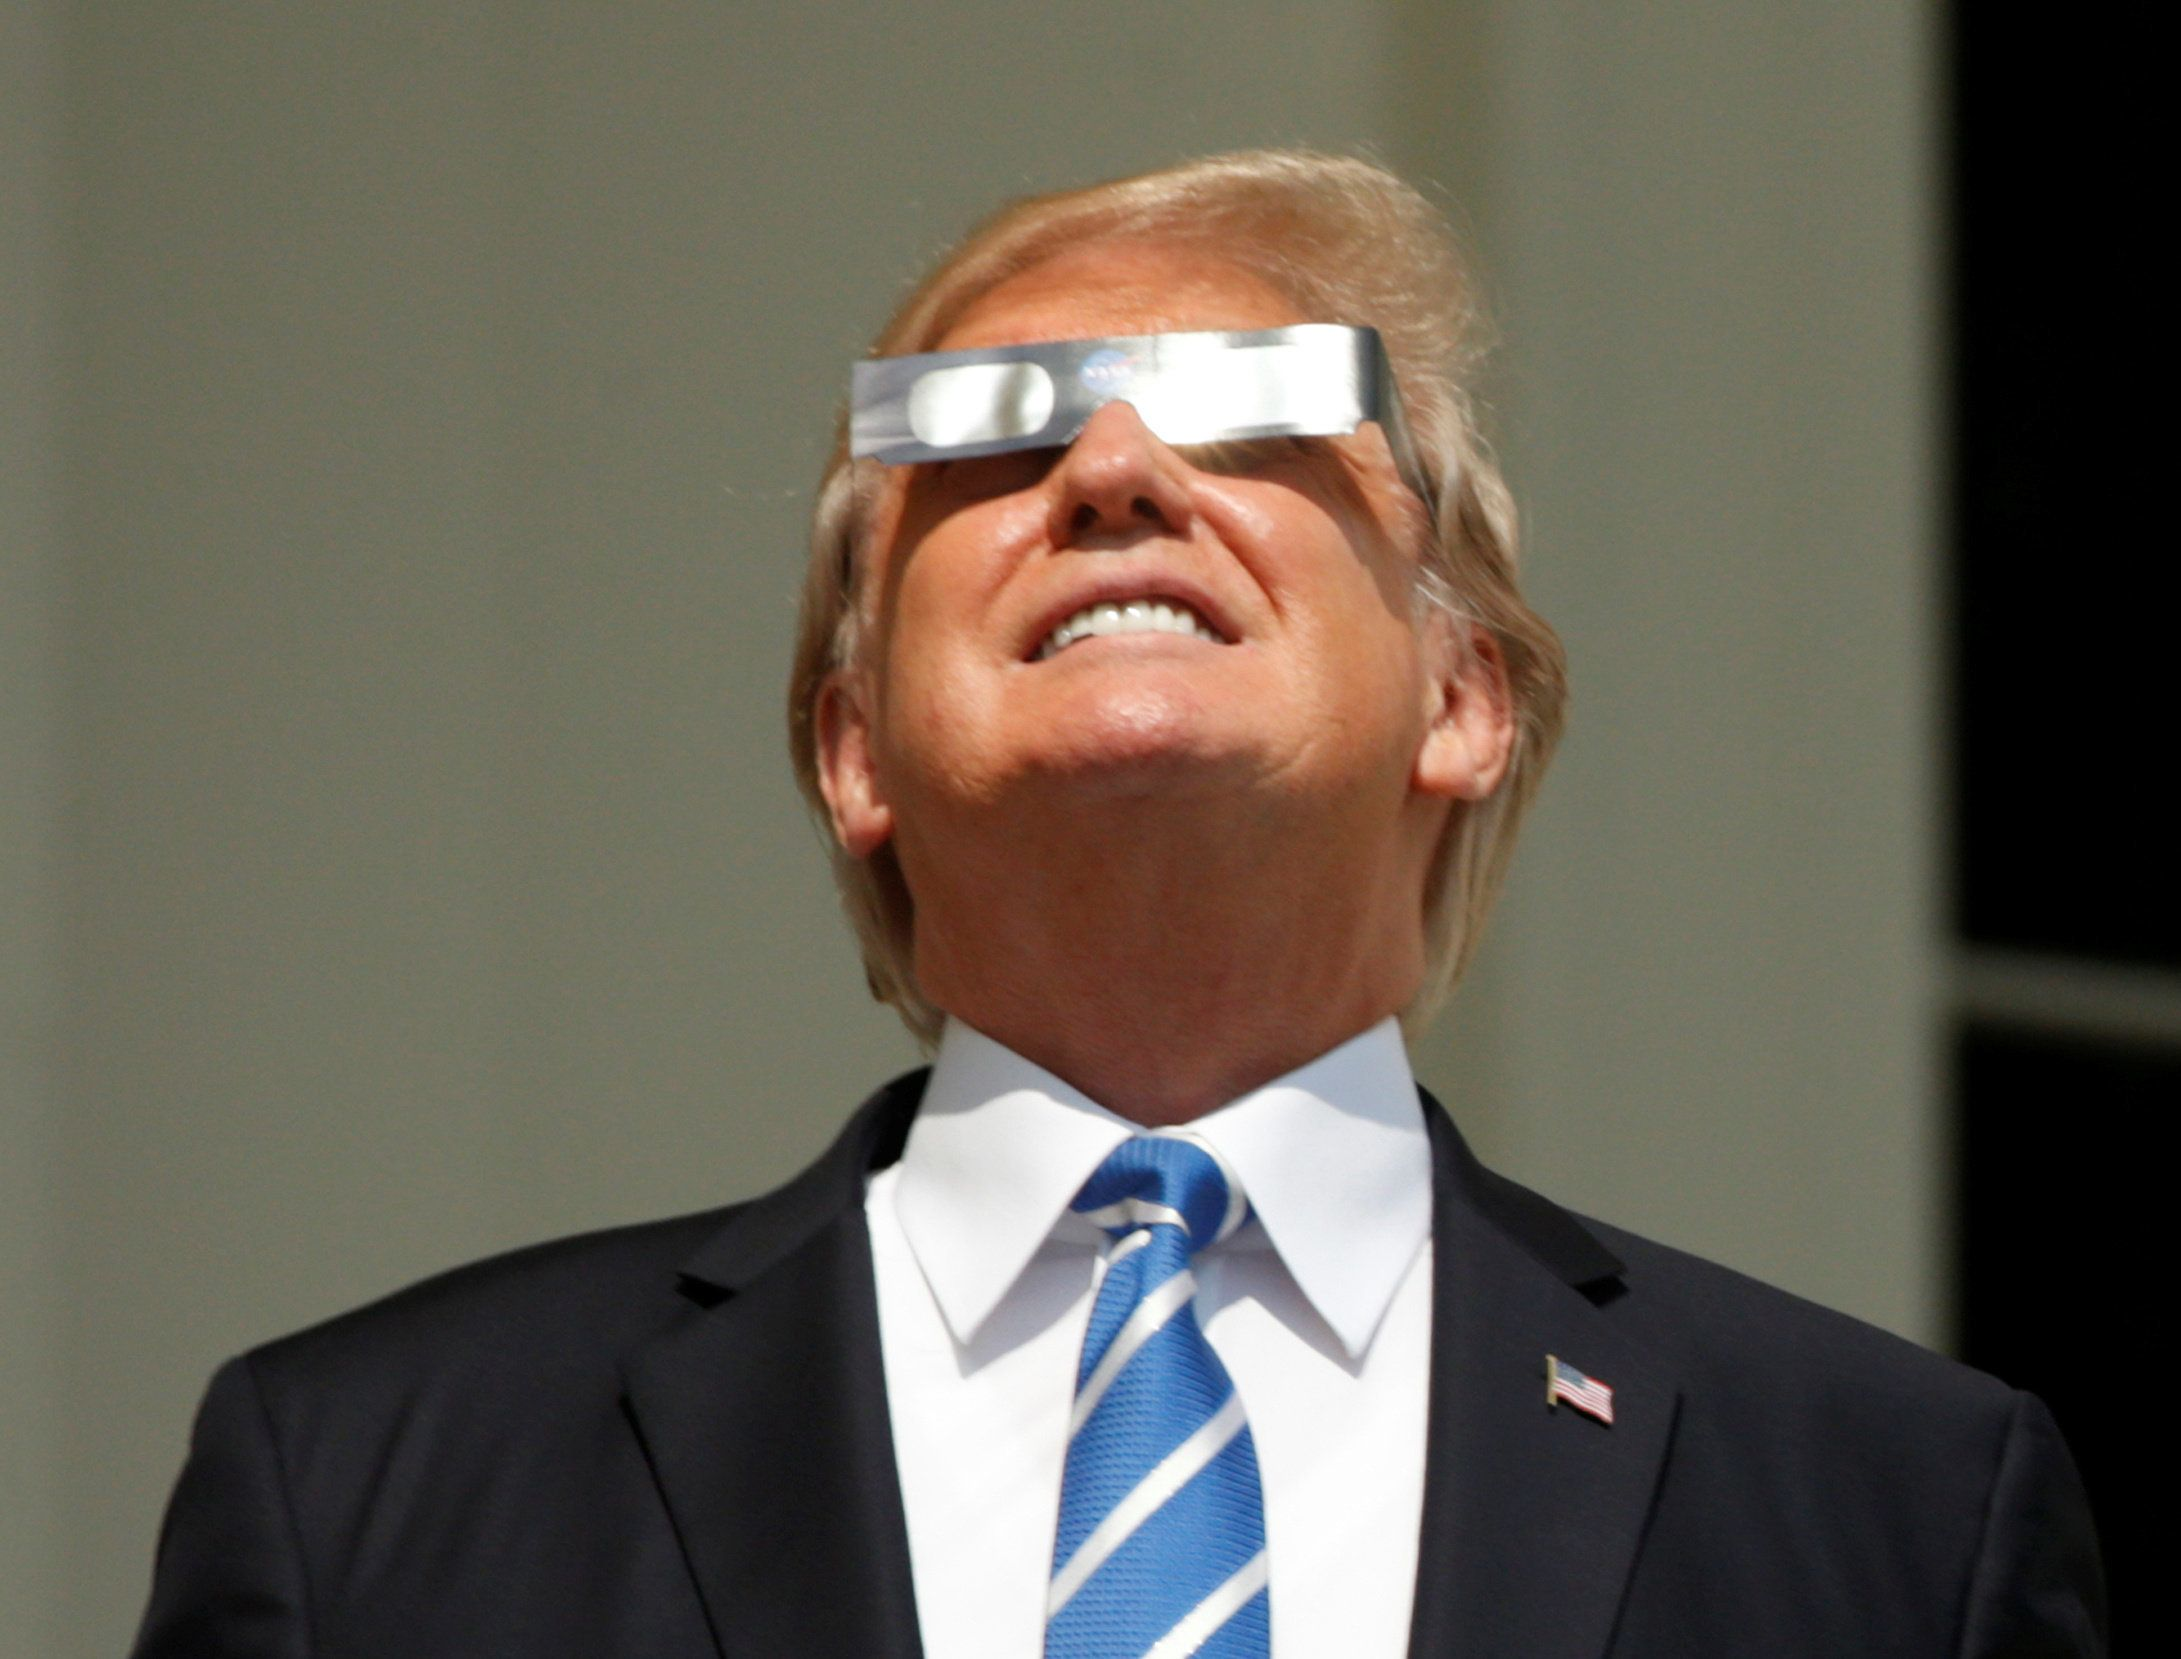 U.S. President Donald Trump watches the solar eclipse from the Truman Balcony at the White House in Washington, U.S., August 21, 2017. REUTERS/Kevin Lamarque